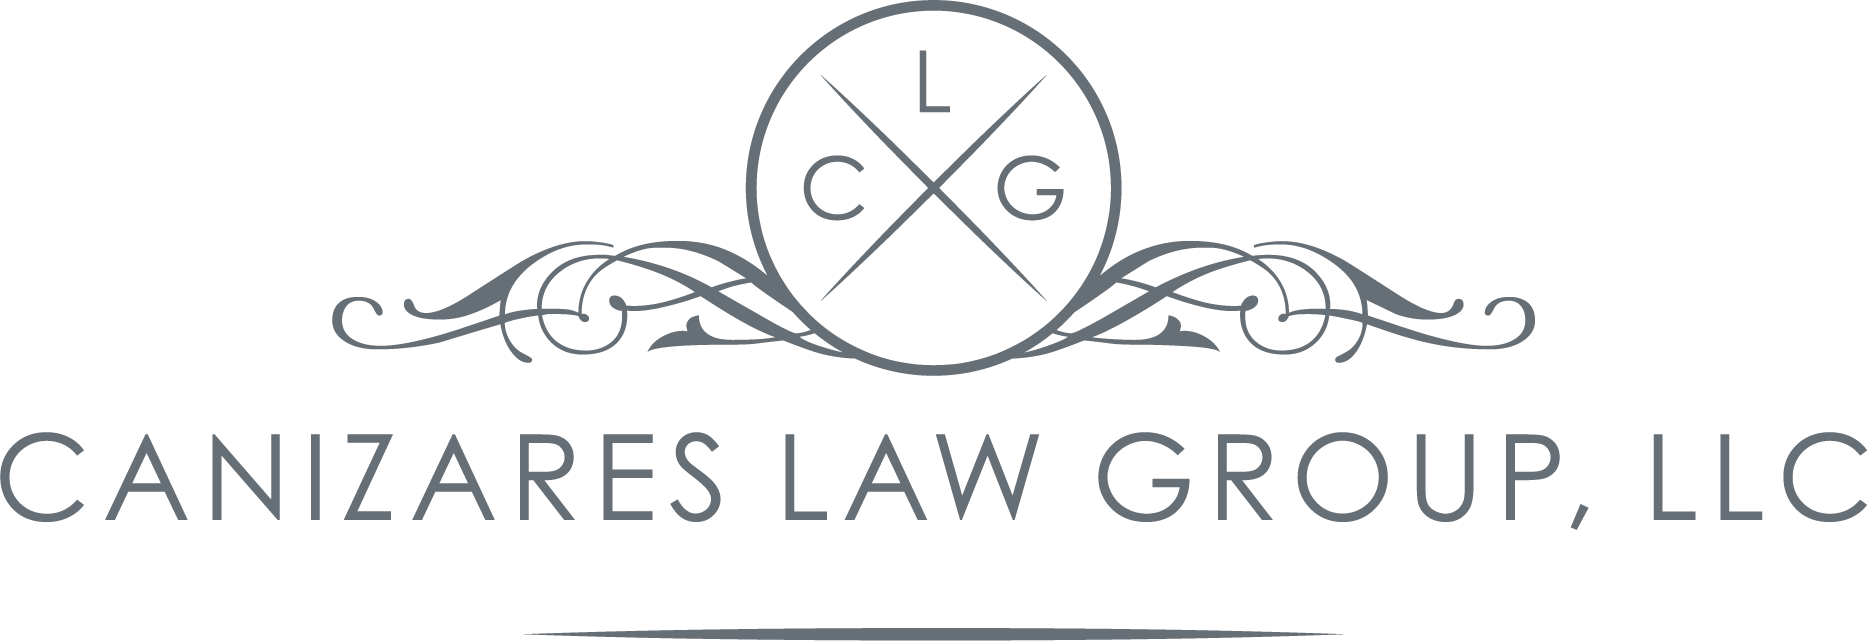 Canizares Law Group